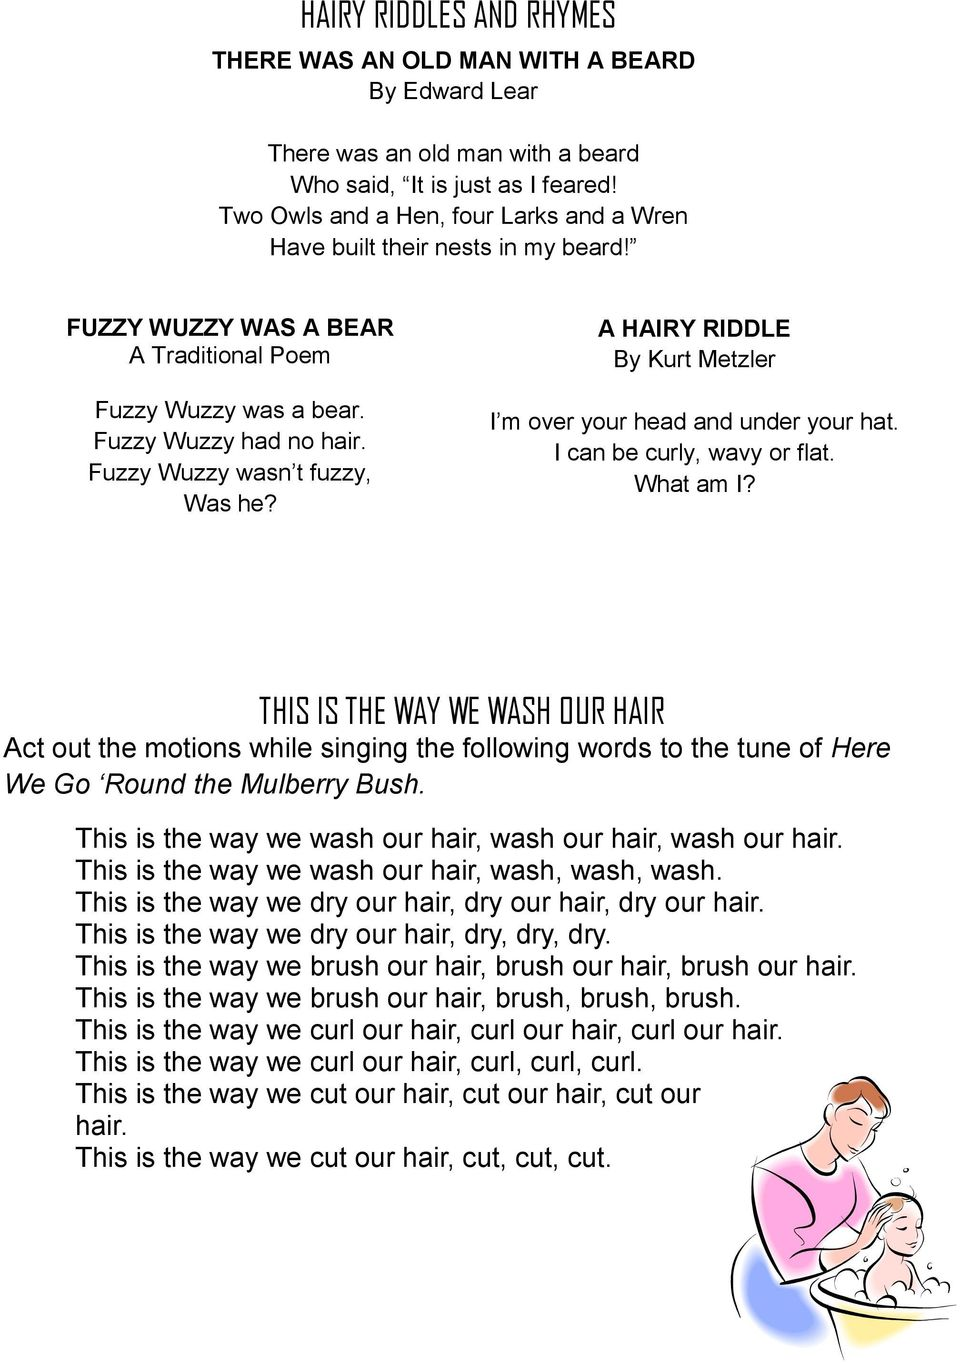 Fuzzy Wuzzy wasn t fuzzy, Was he? A HAIRY RIDDLE By Kurt Metzler I m over your head and under your hat. I can be curly, wavy or flat. What am I?